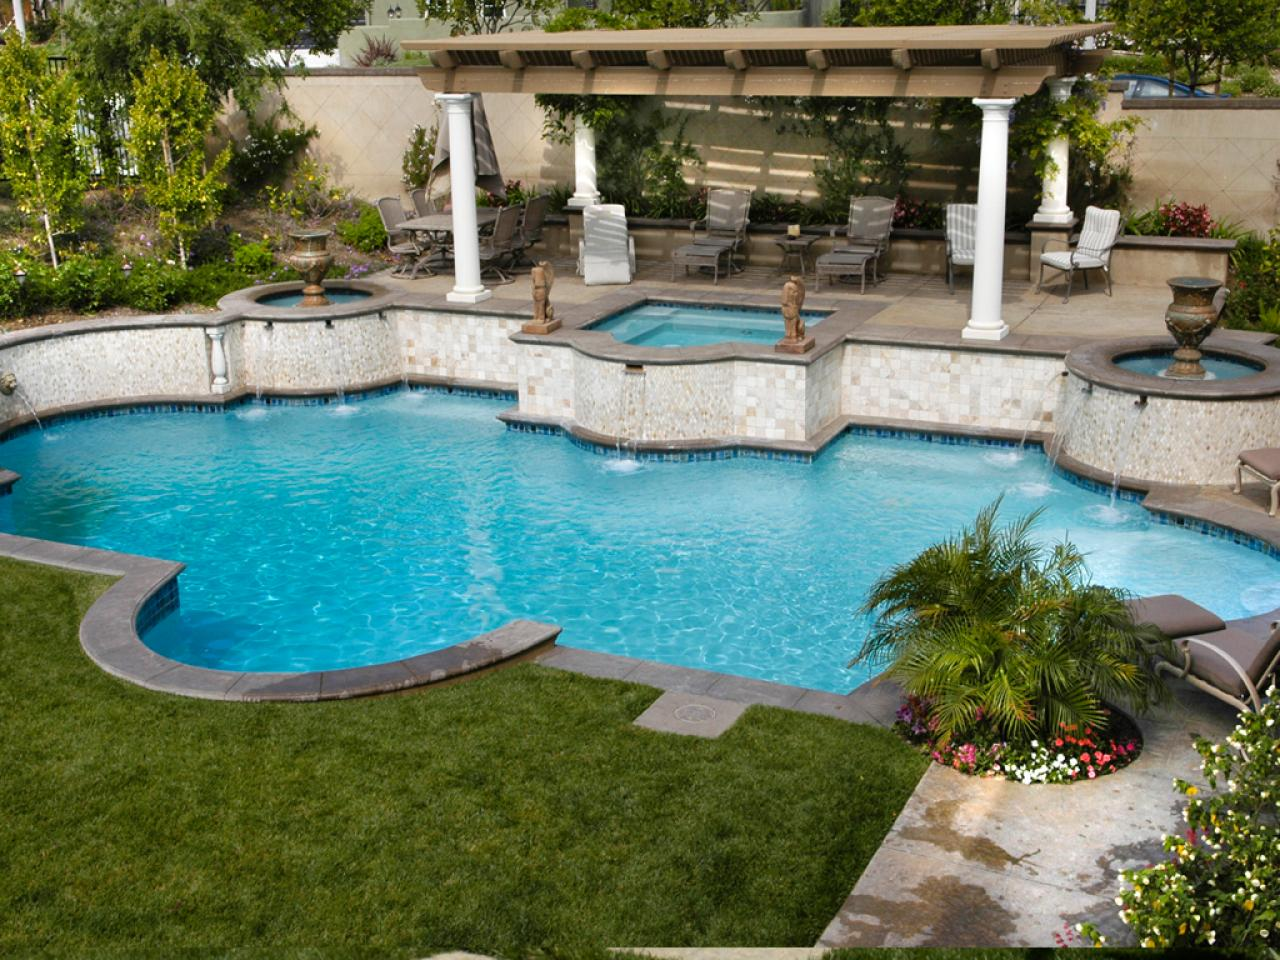 Mediterranean inspired swimming pools outdoor spaces for Pool designs images